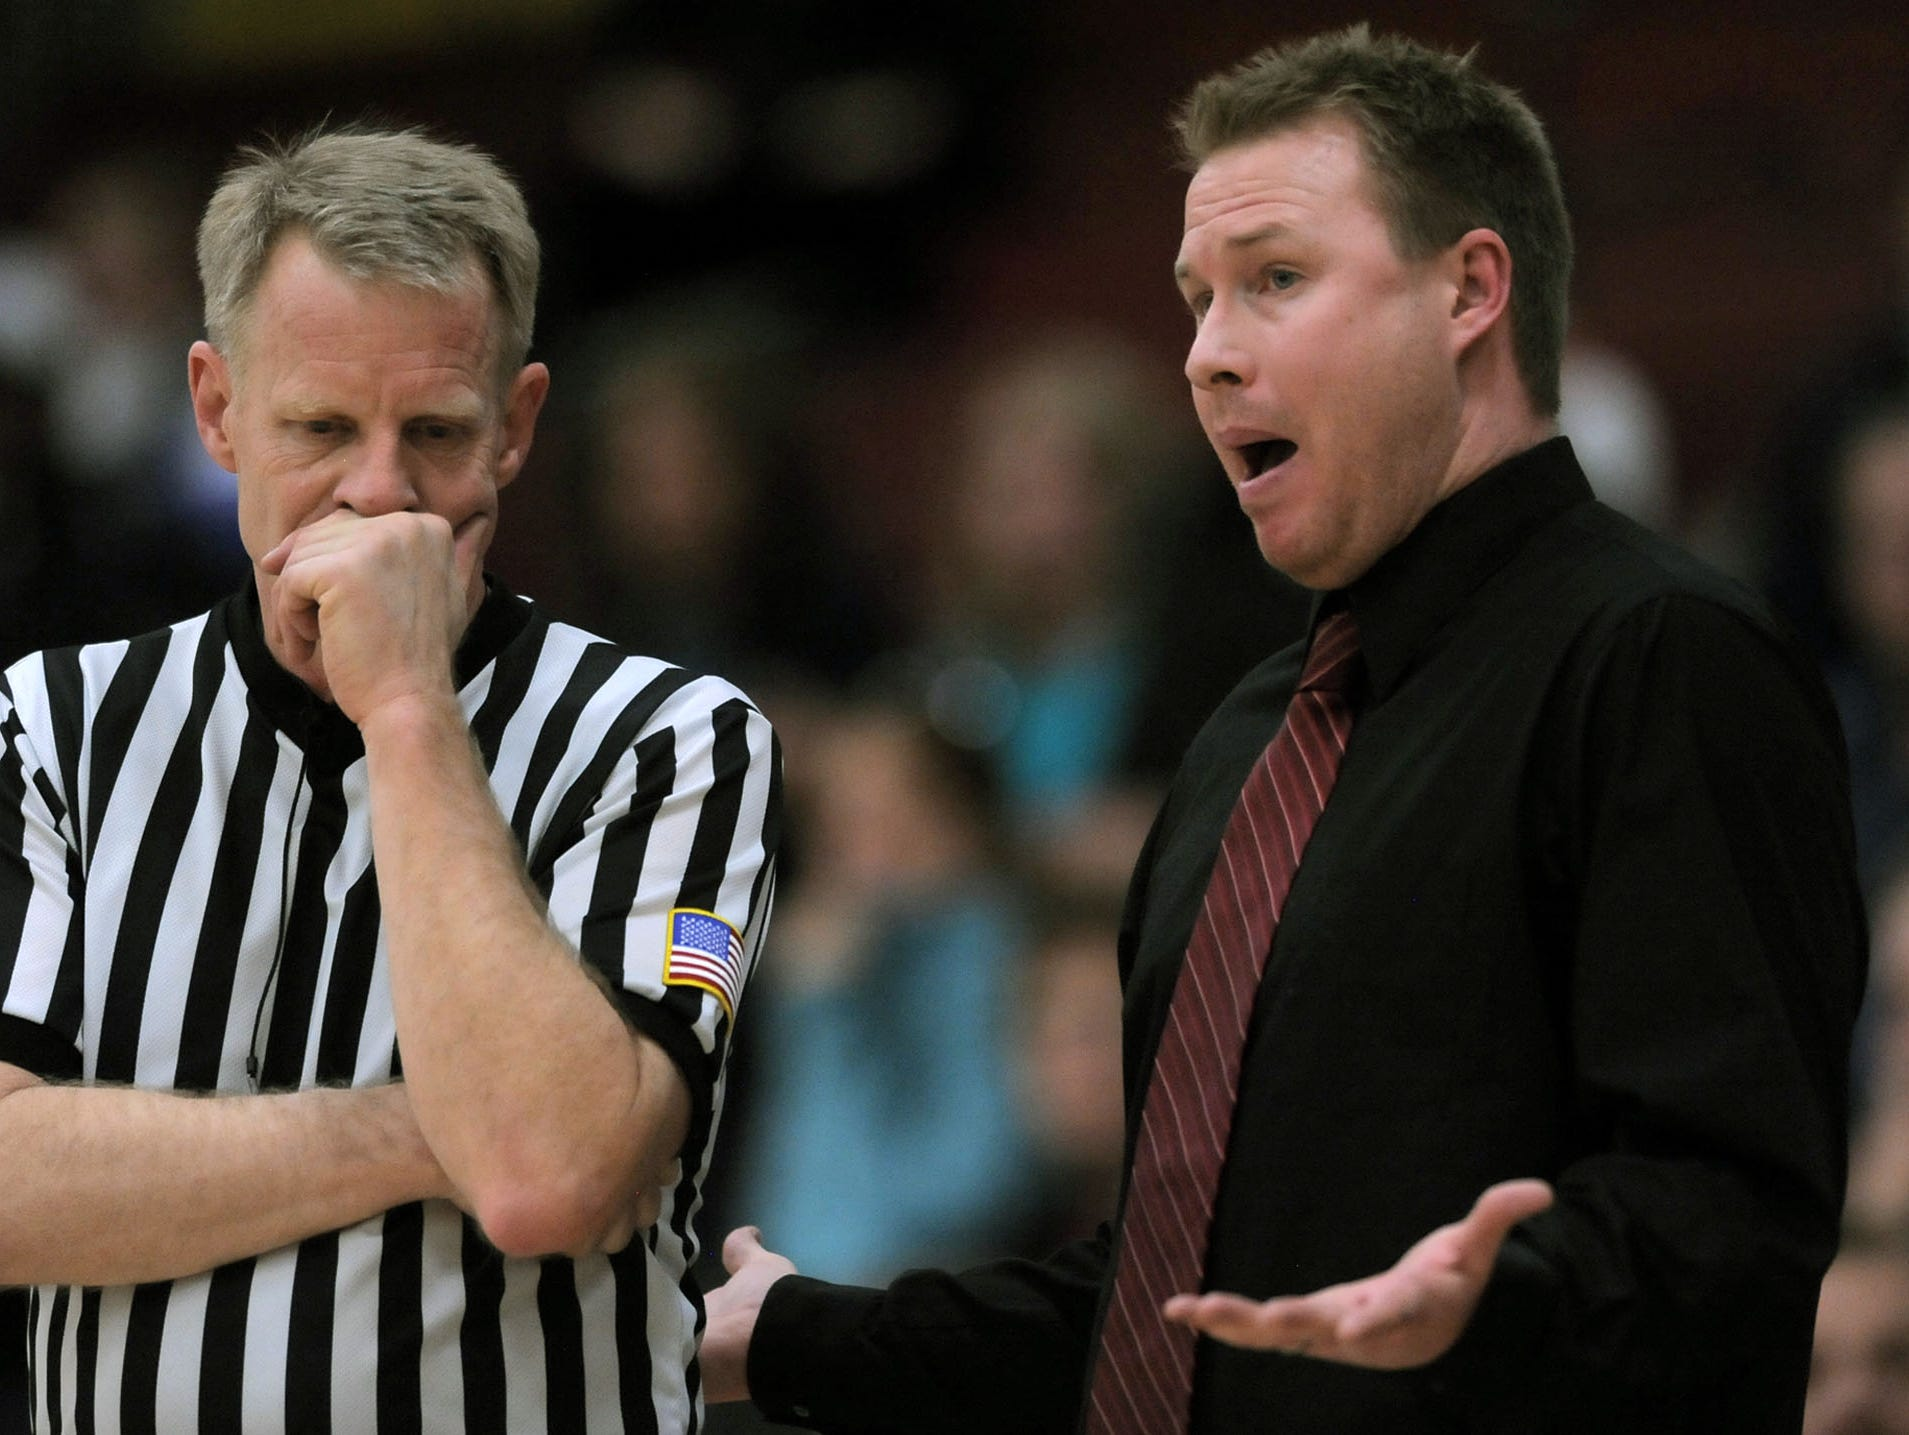 Jon Rakiecki has been hired as the Windsor boys basketball coach. He previously coached at Rocky Mountain and played in college at CSU.